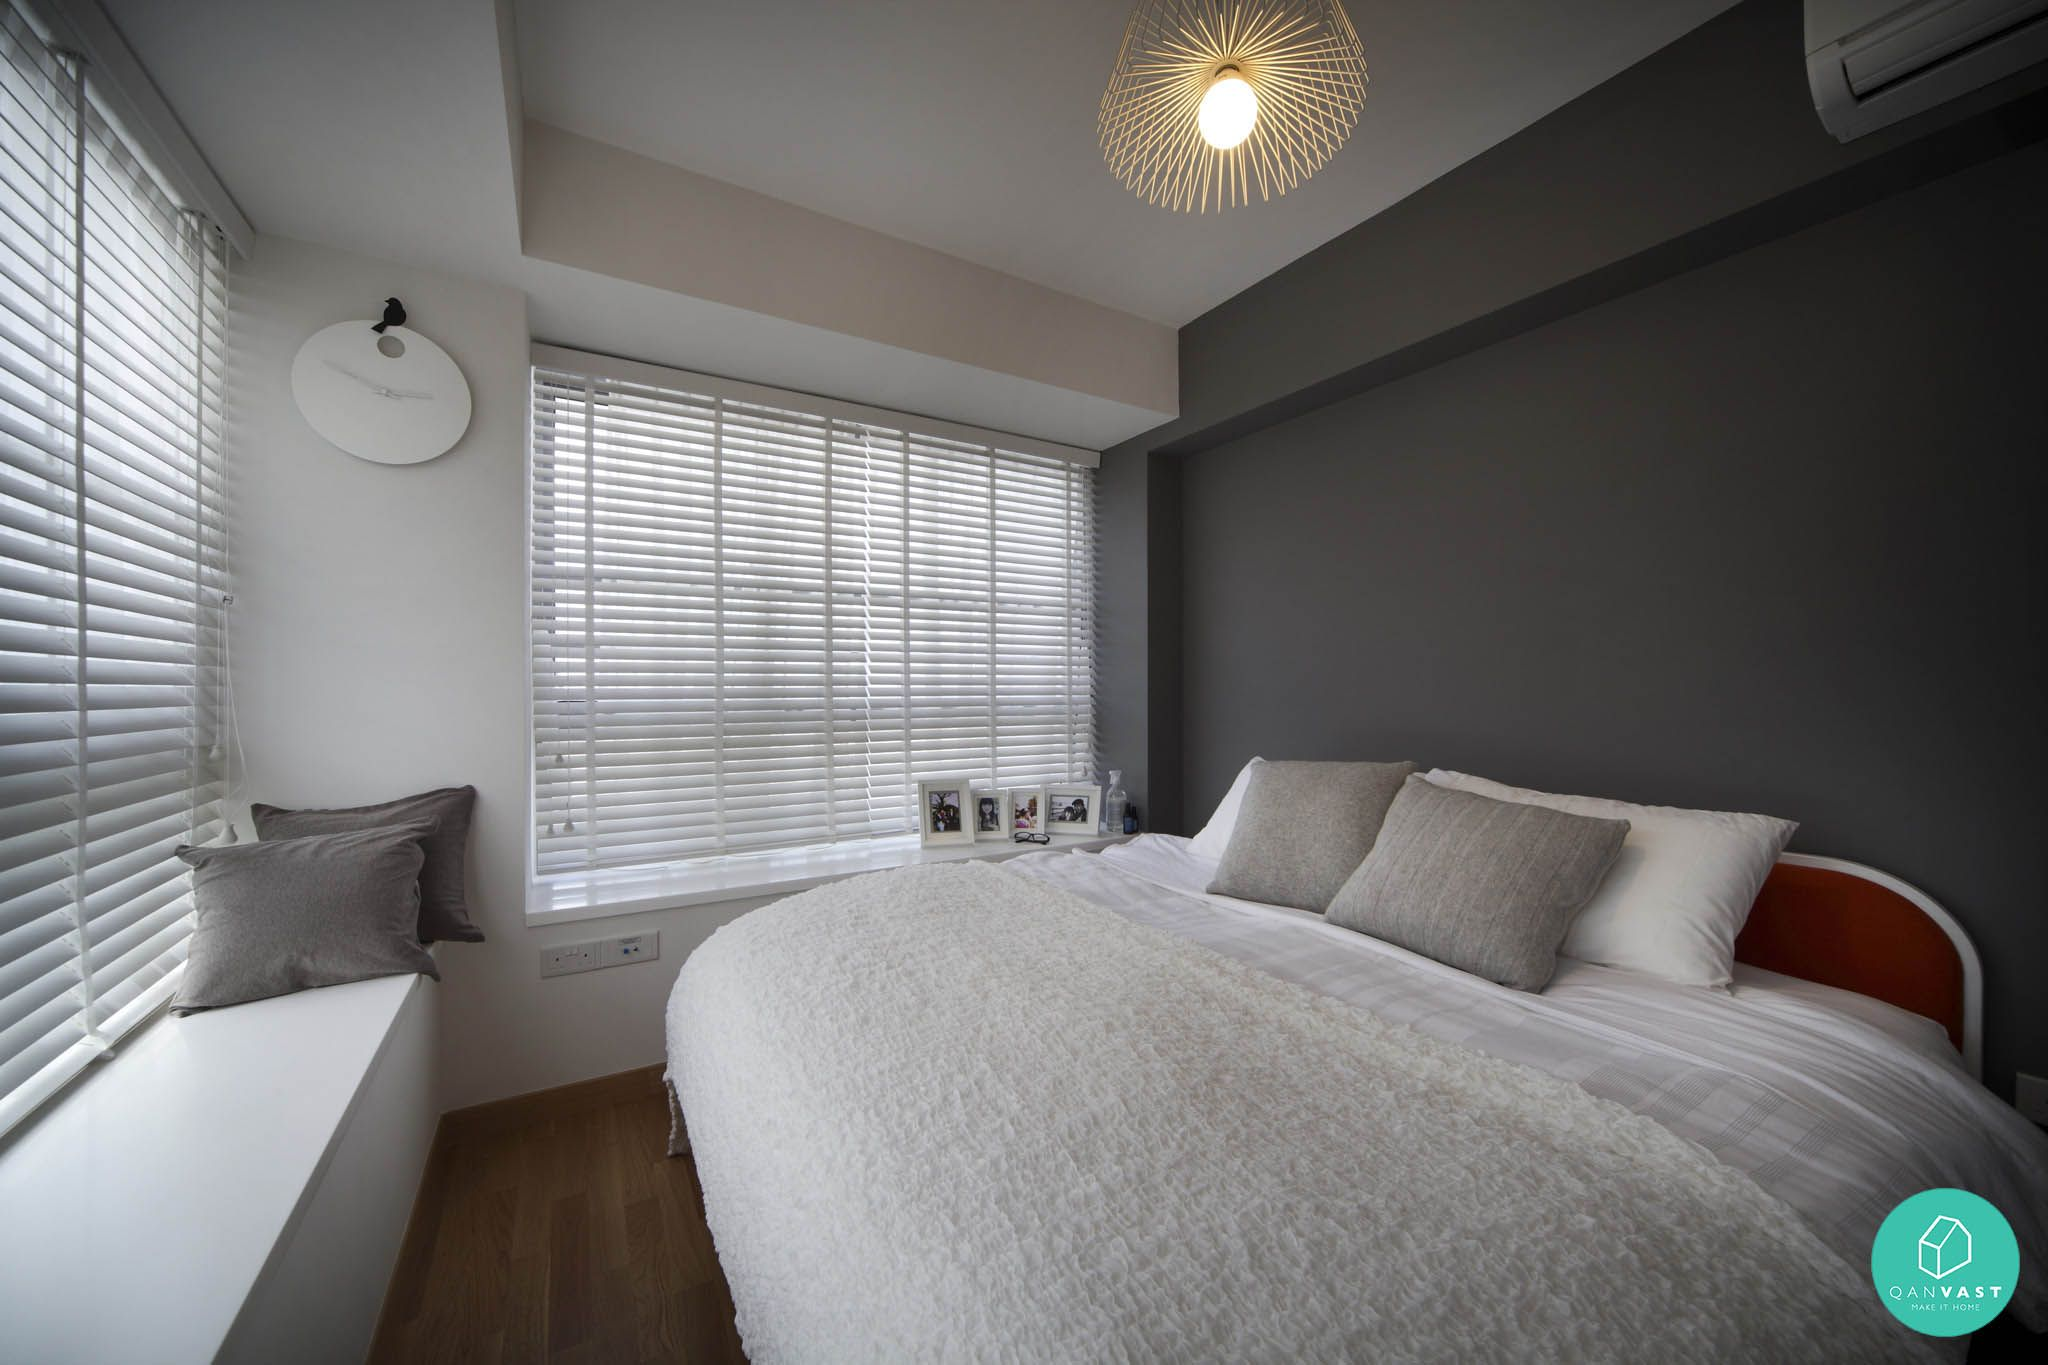 5 room hdb master bedroom design  Your Dream Home For Under   Boon Bedrooms and Settees